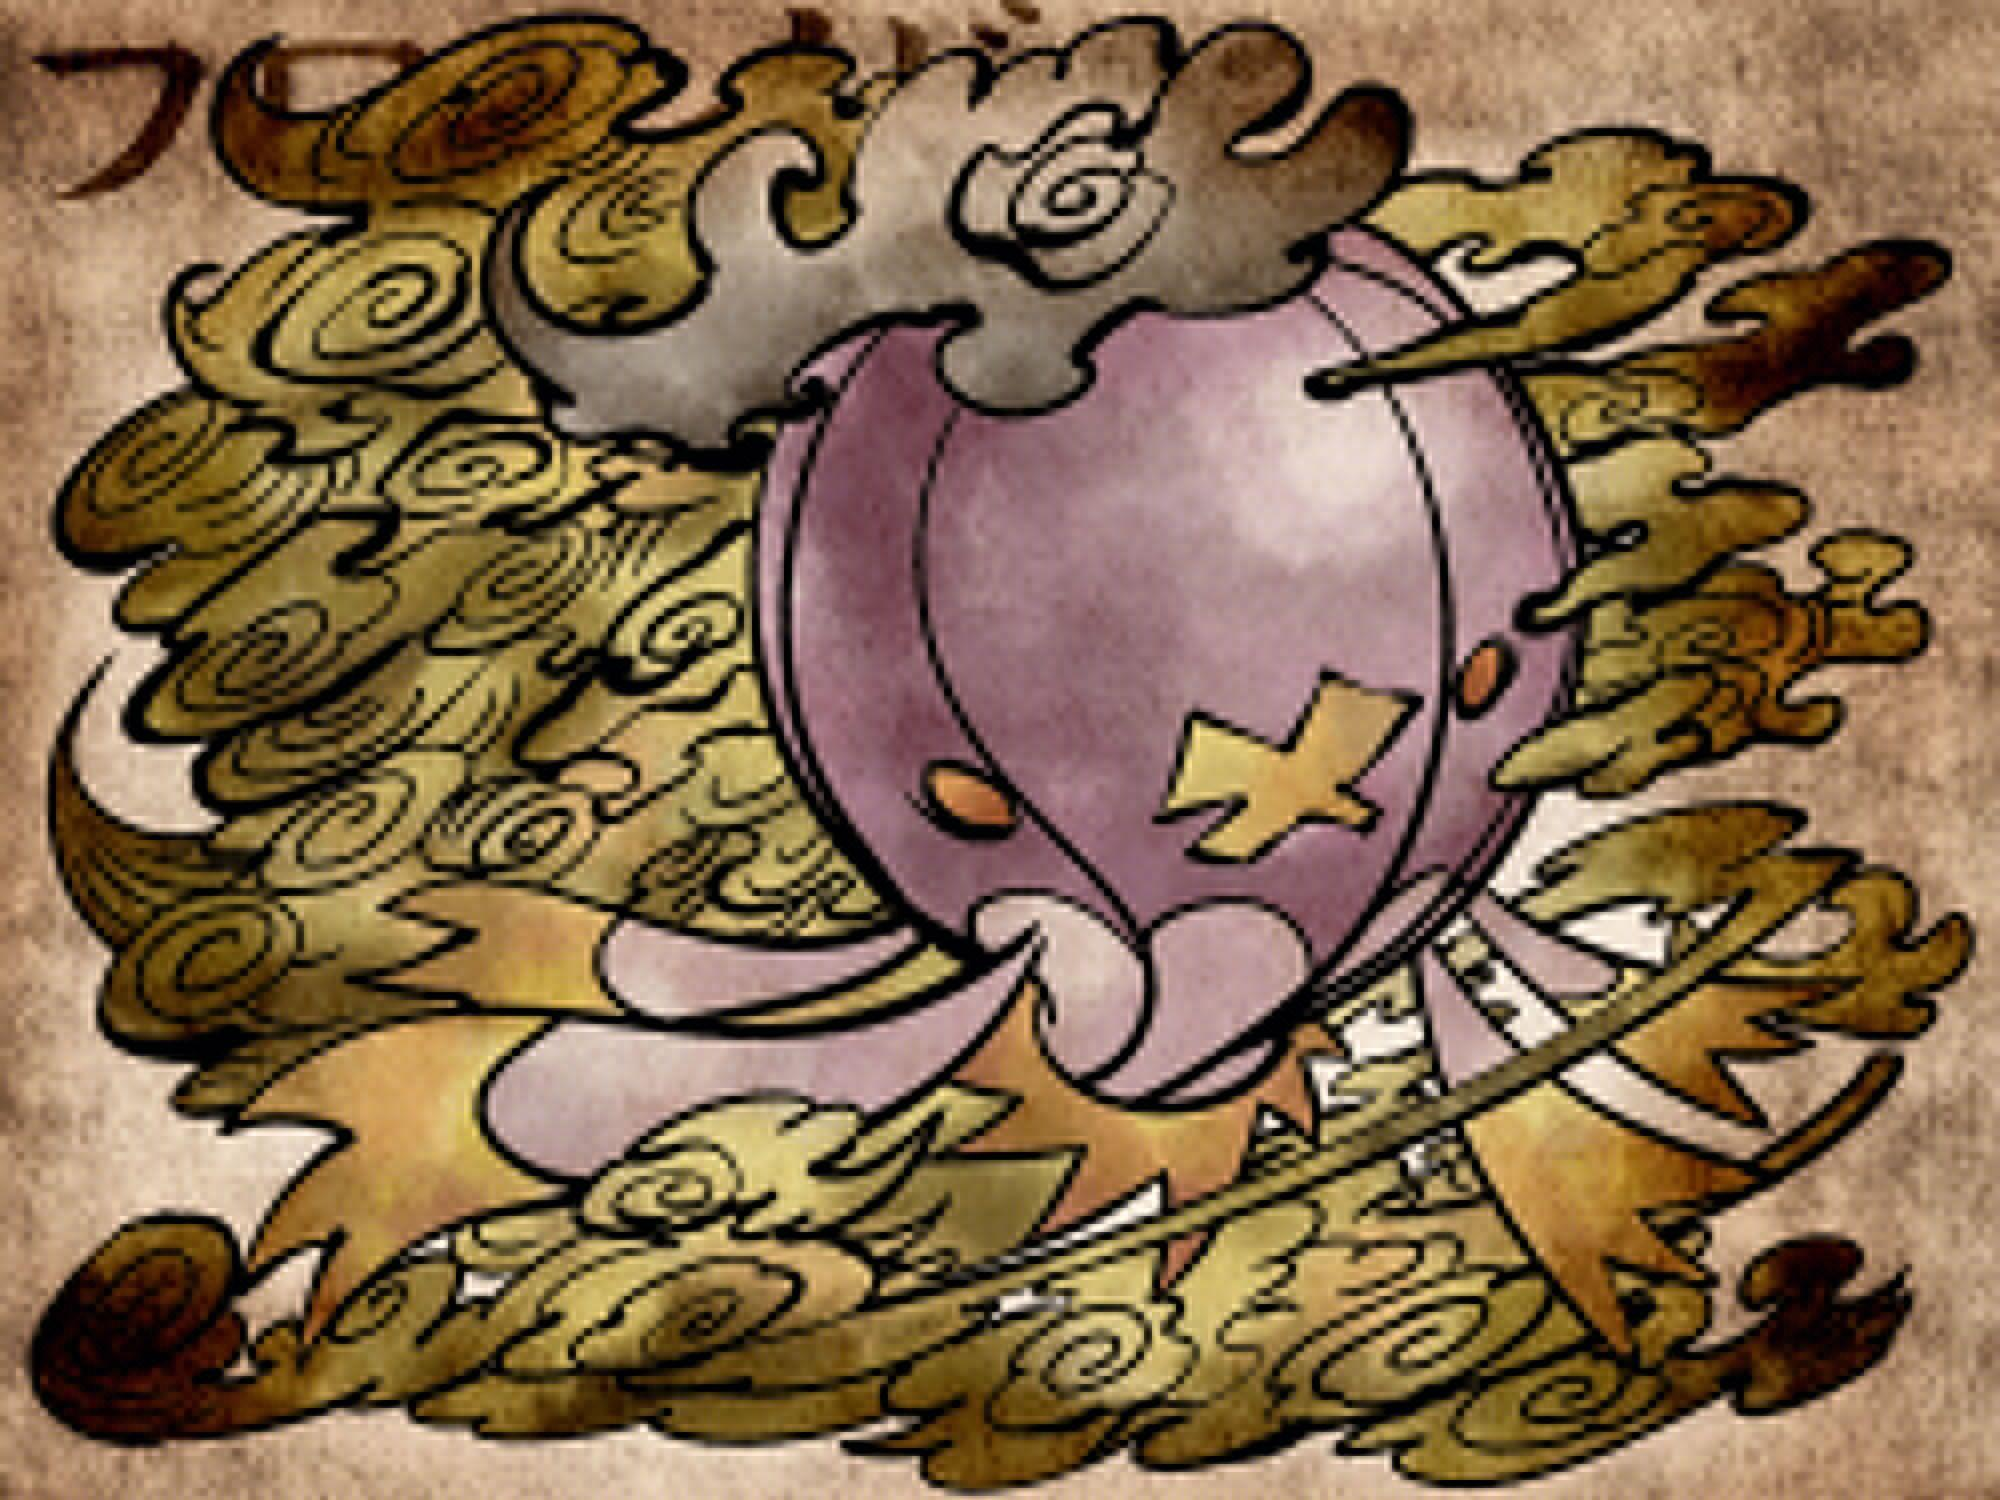 Drifblim - Pokémon - Wallpaper #1010034 - Zerochan Anime Image Board